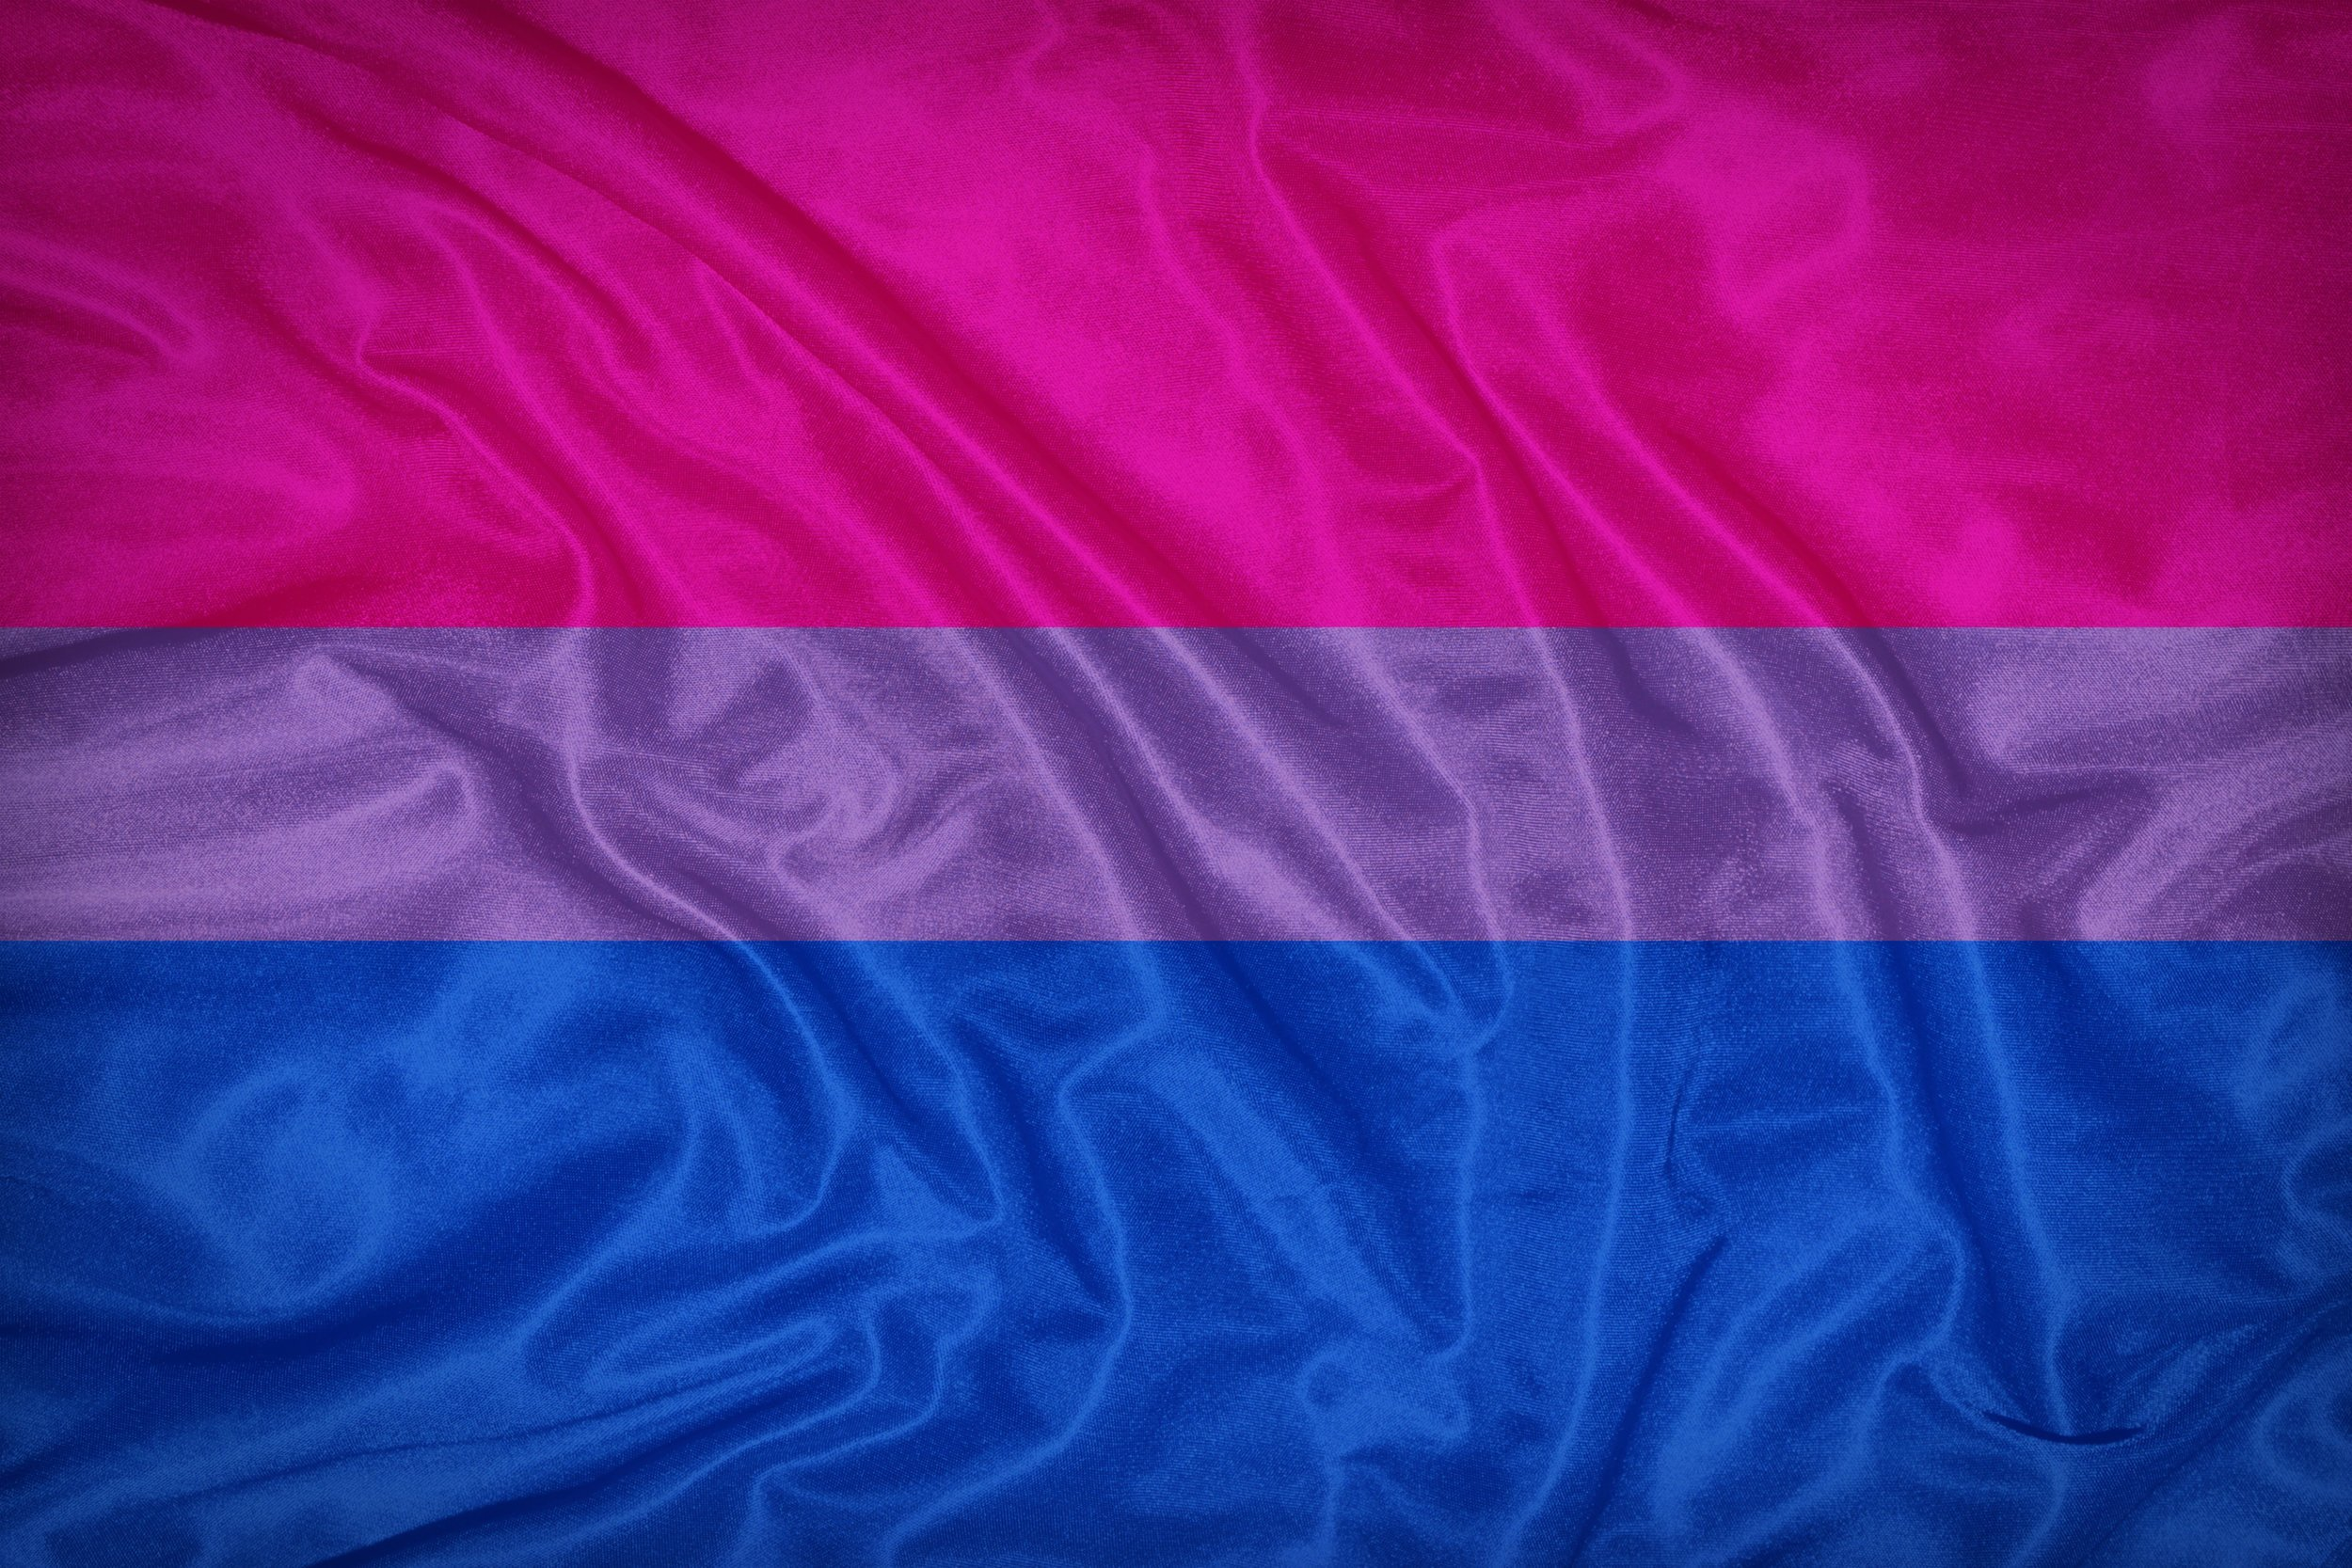 Celebrating the bi flag